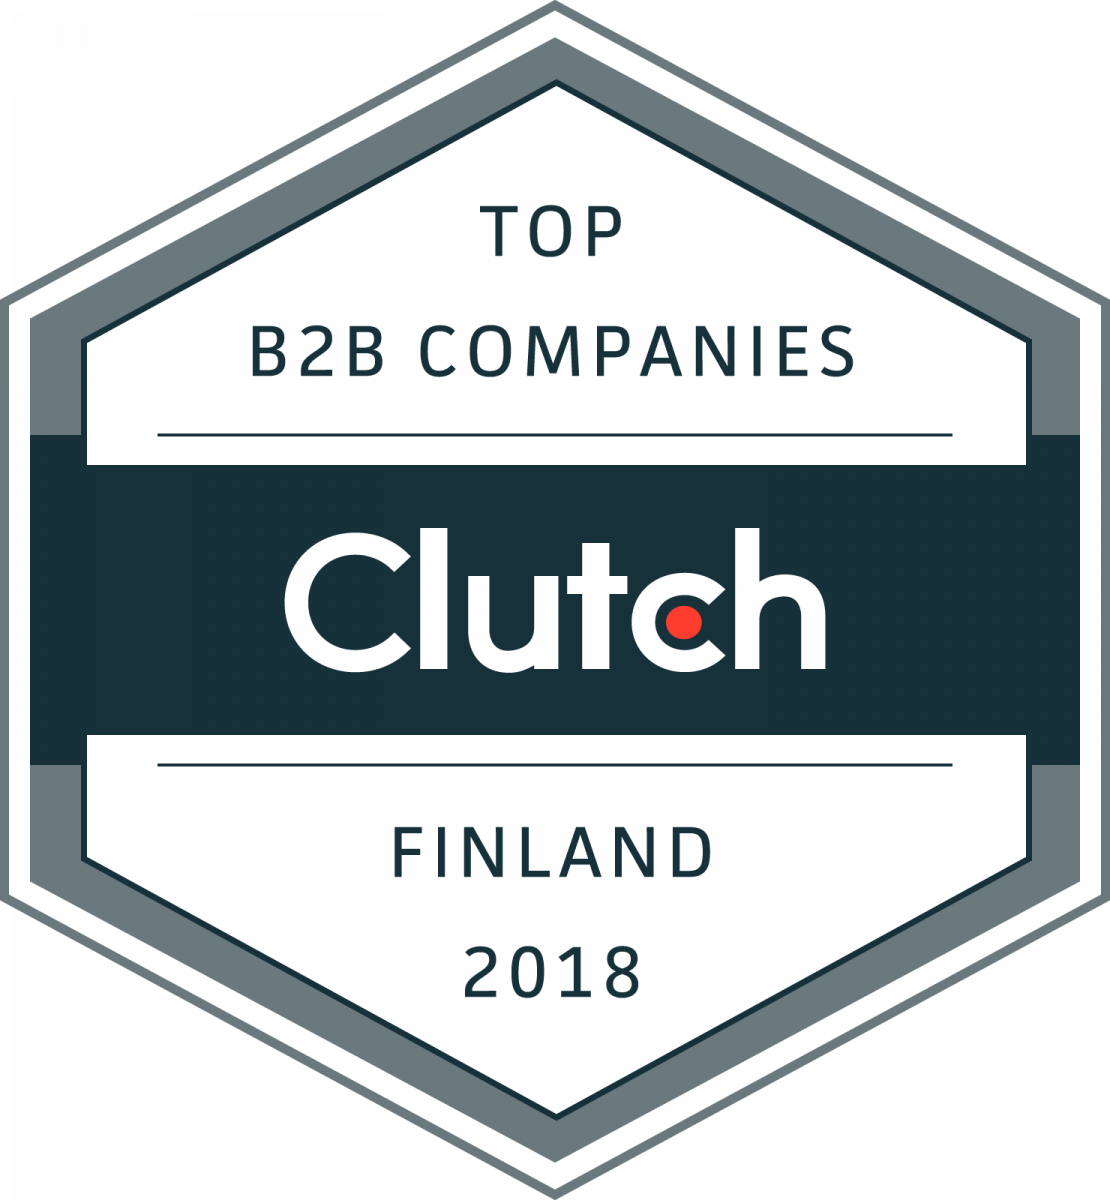 best business service providers in finland in 2018